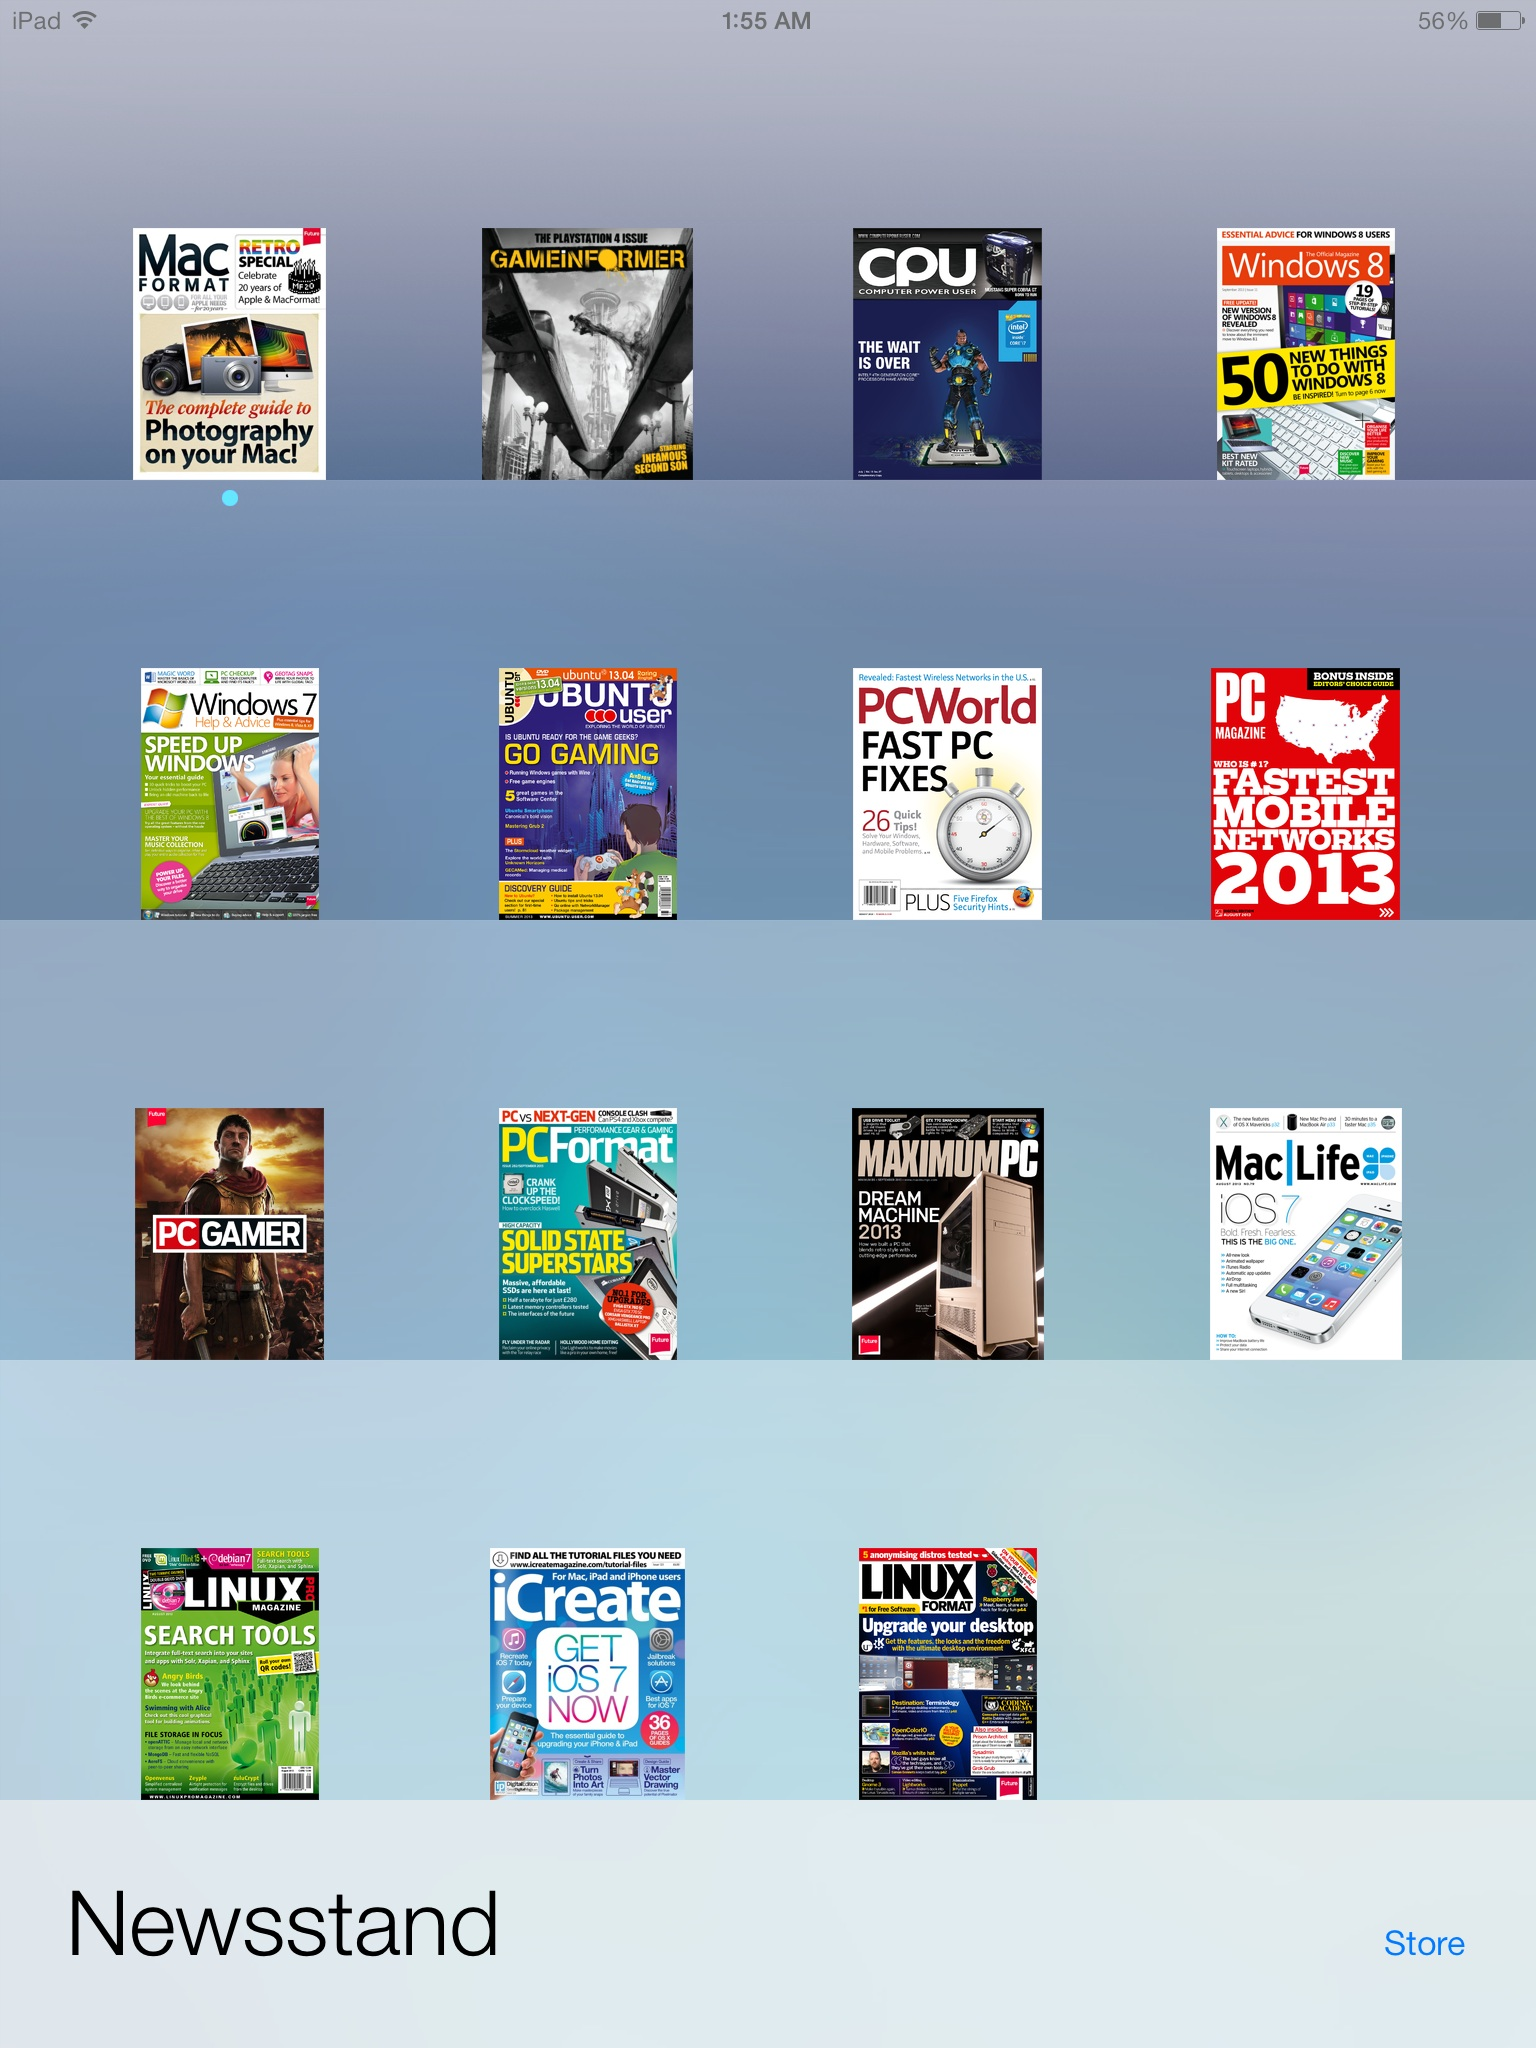 Newsstand app iphone transparent stock Newsstand app iphone - ClipartFest transparent stock